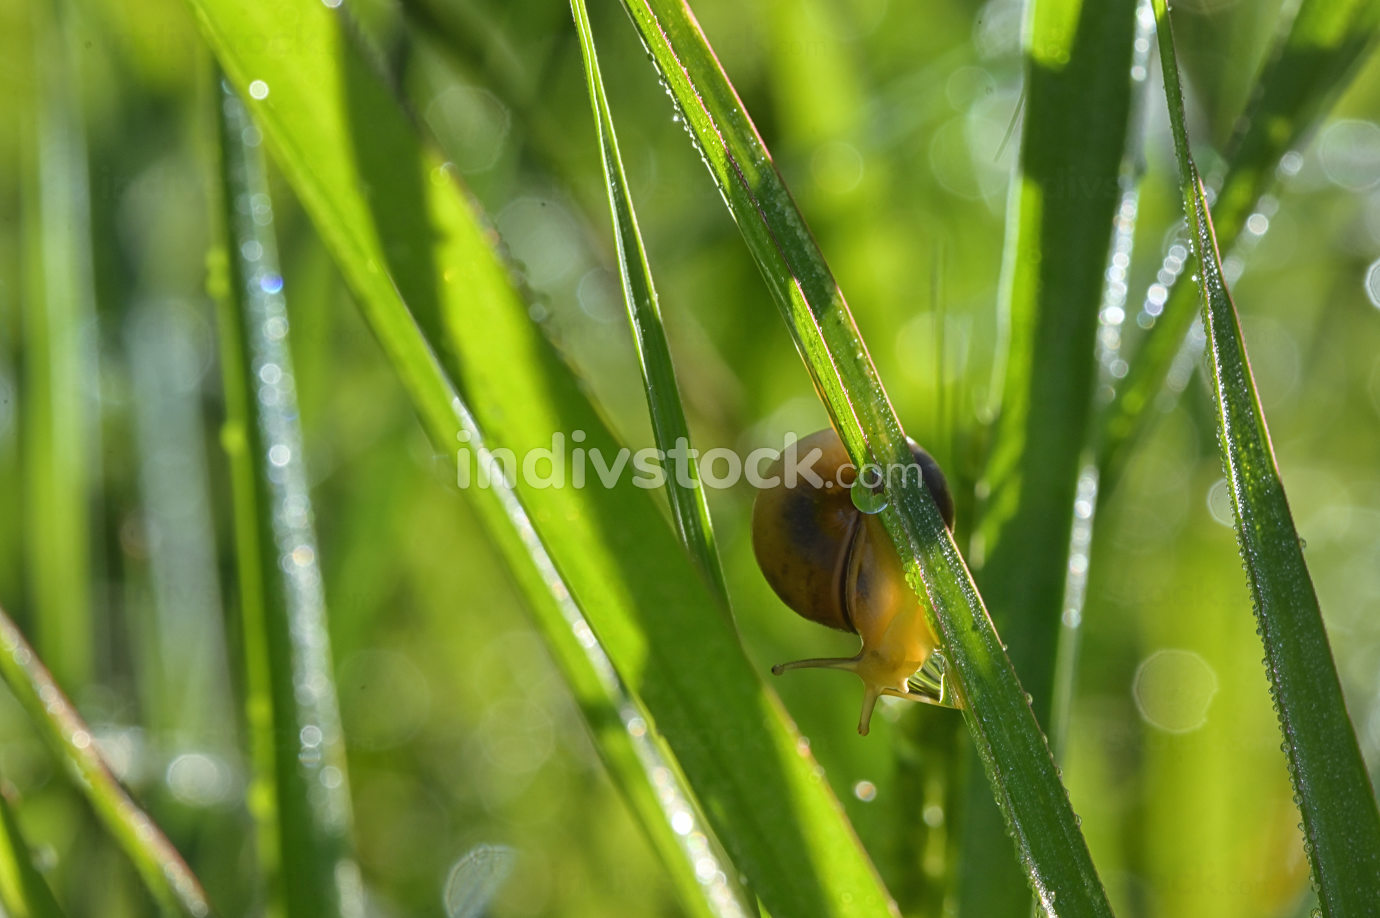 snail and dew drop in summer time